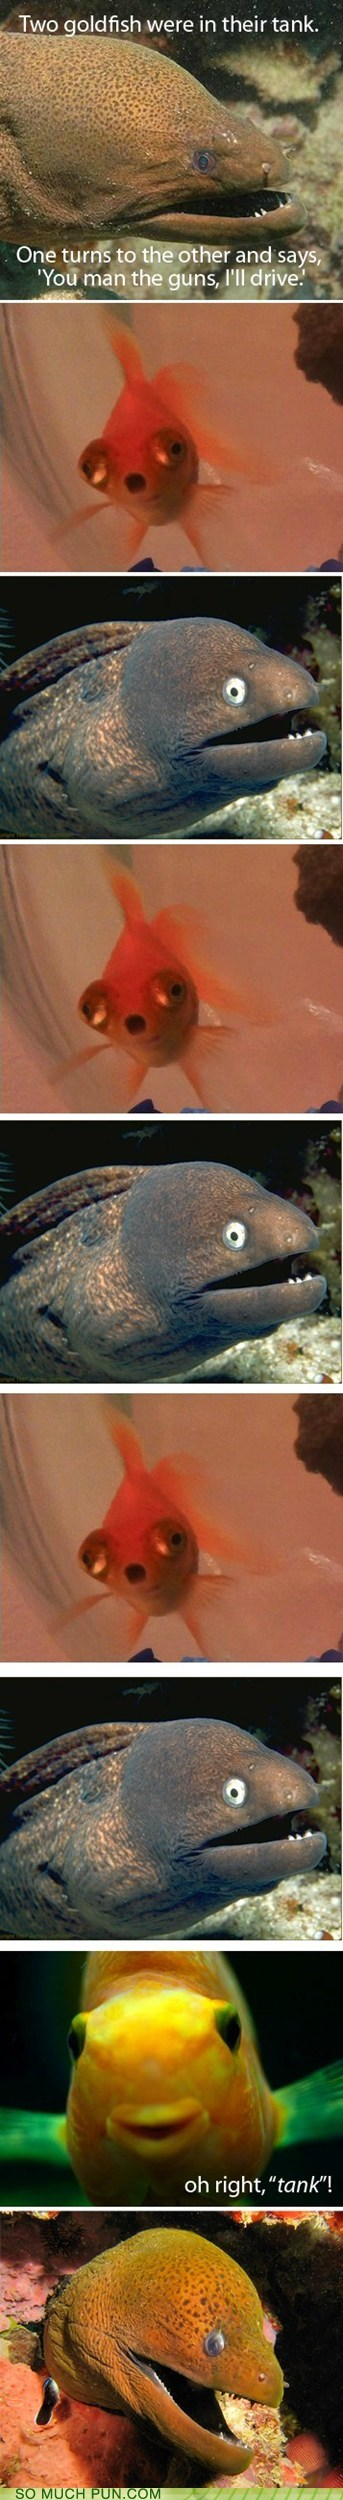 Bad Joke Eel,cliché,double meaning,goldfish,Hall of Fame,ICWUDT,meme,reaction,tank